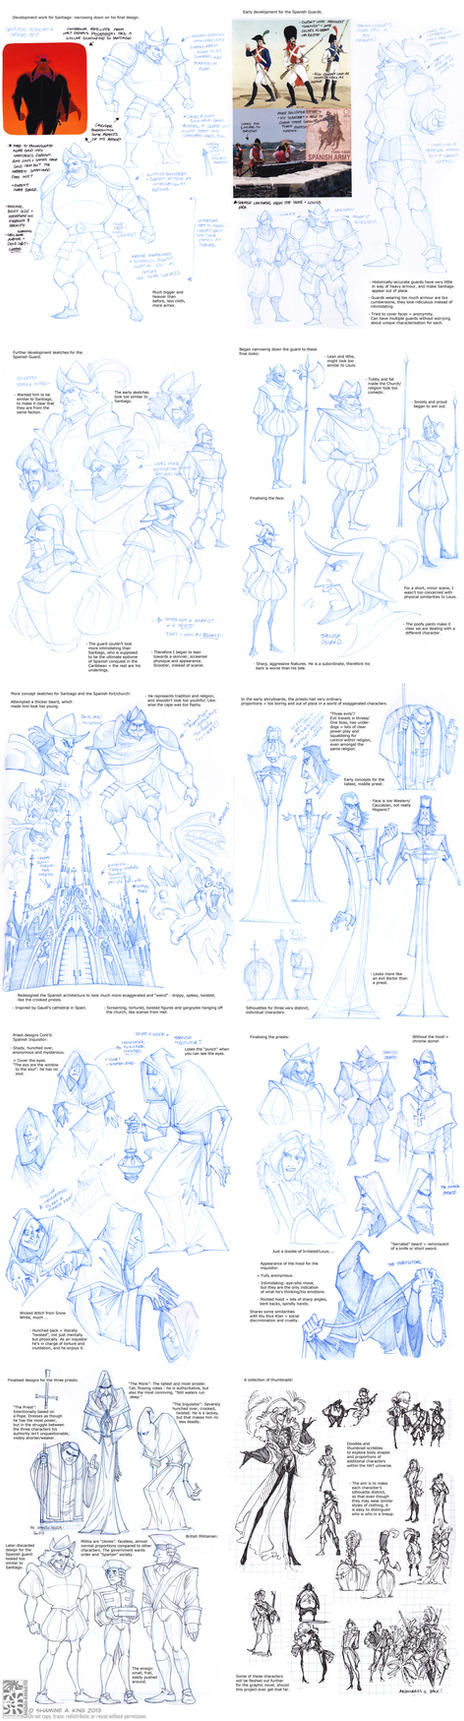 Sketchdump - Spanish Inquisition and Misc by Quarter-Virus